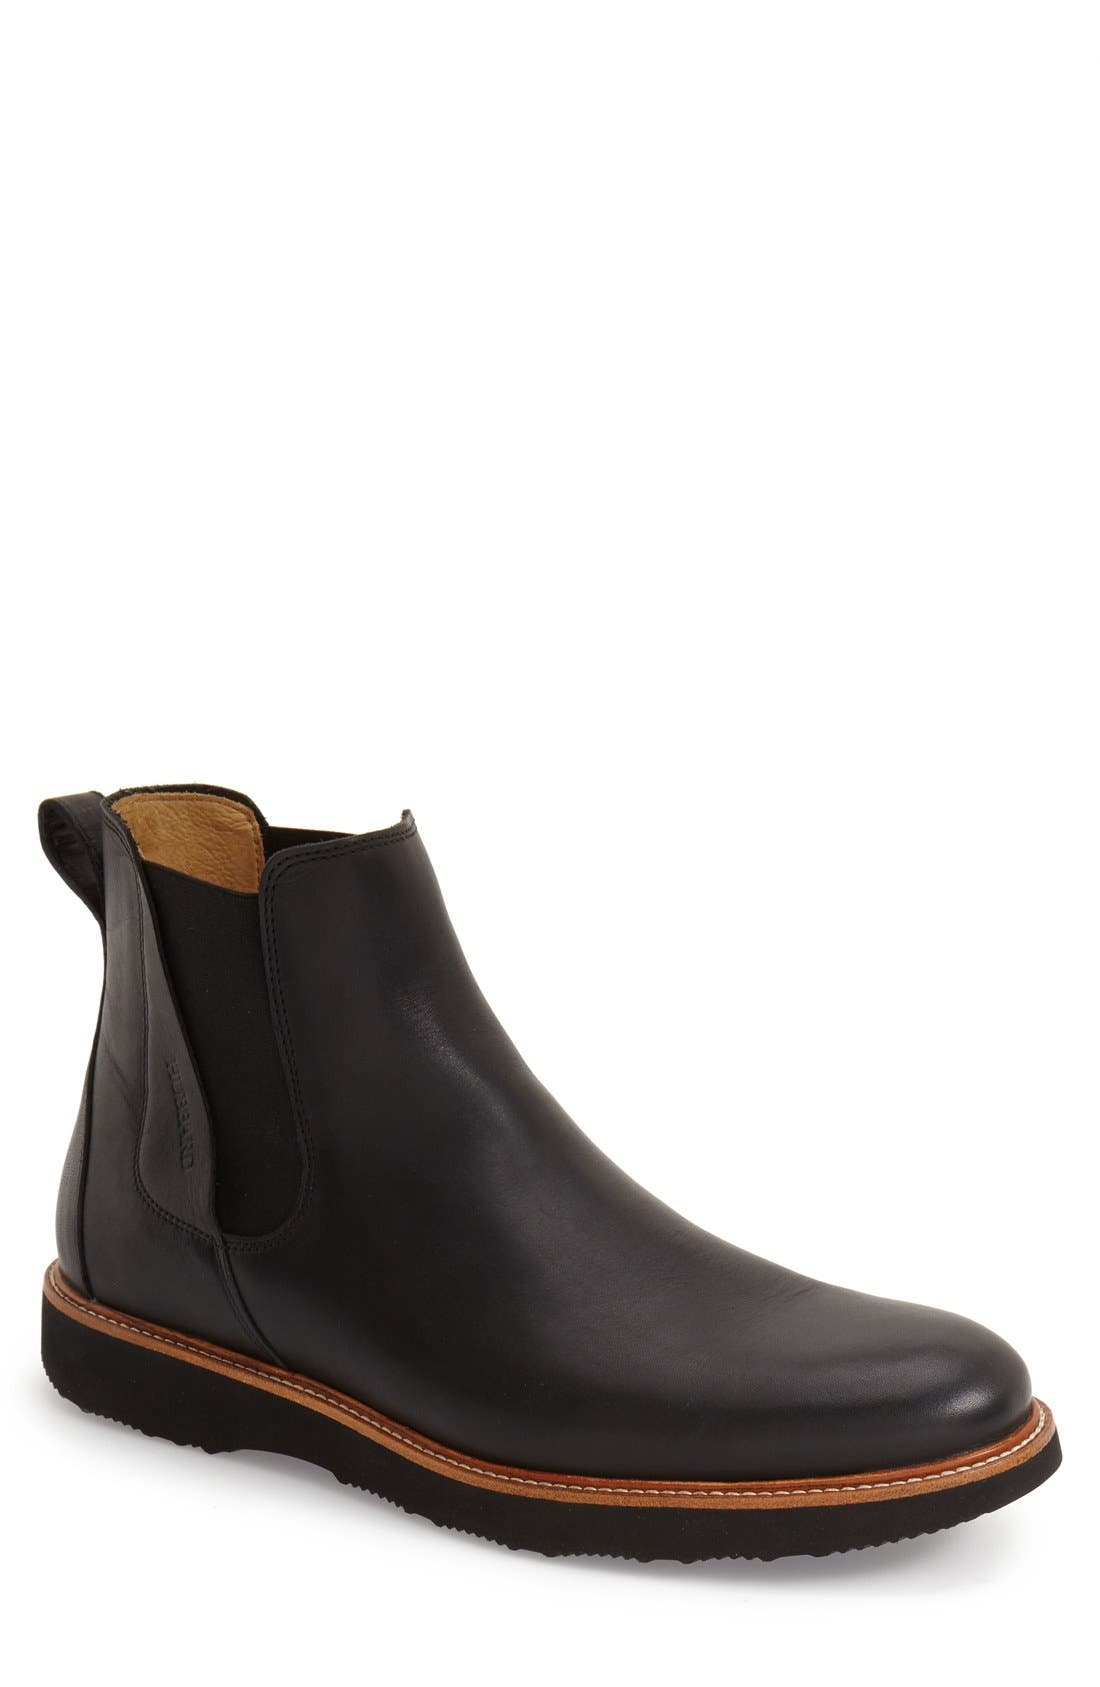 24 Seven Chelsea Boot,                         Main,                         color, 001